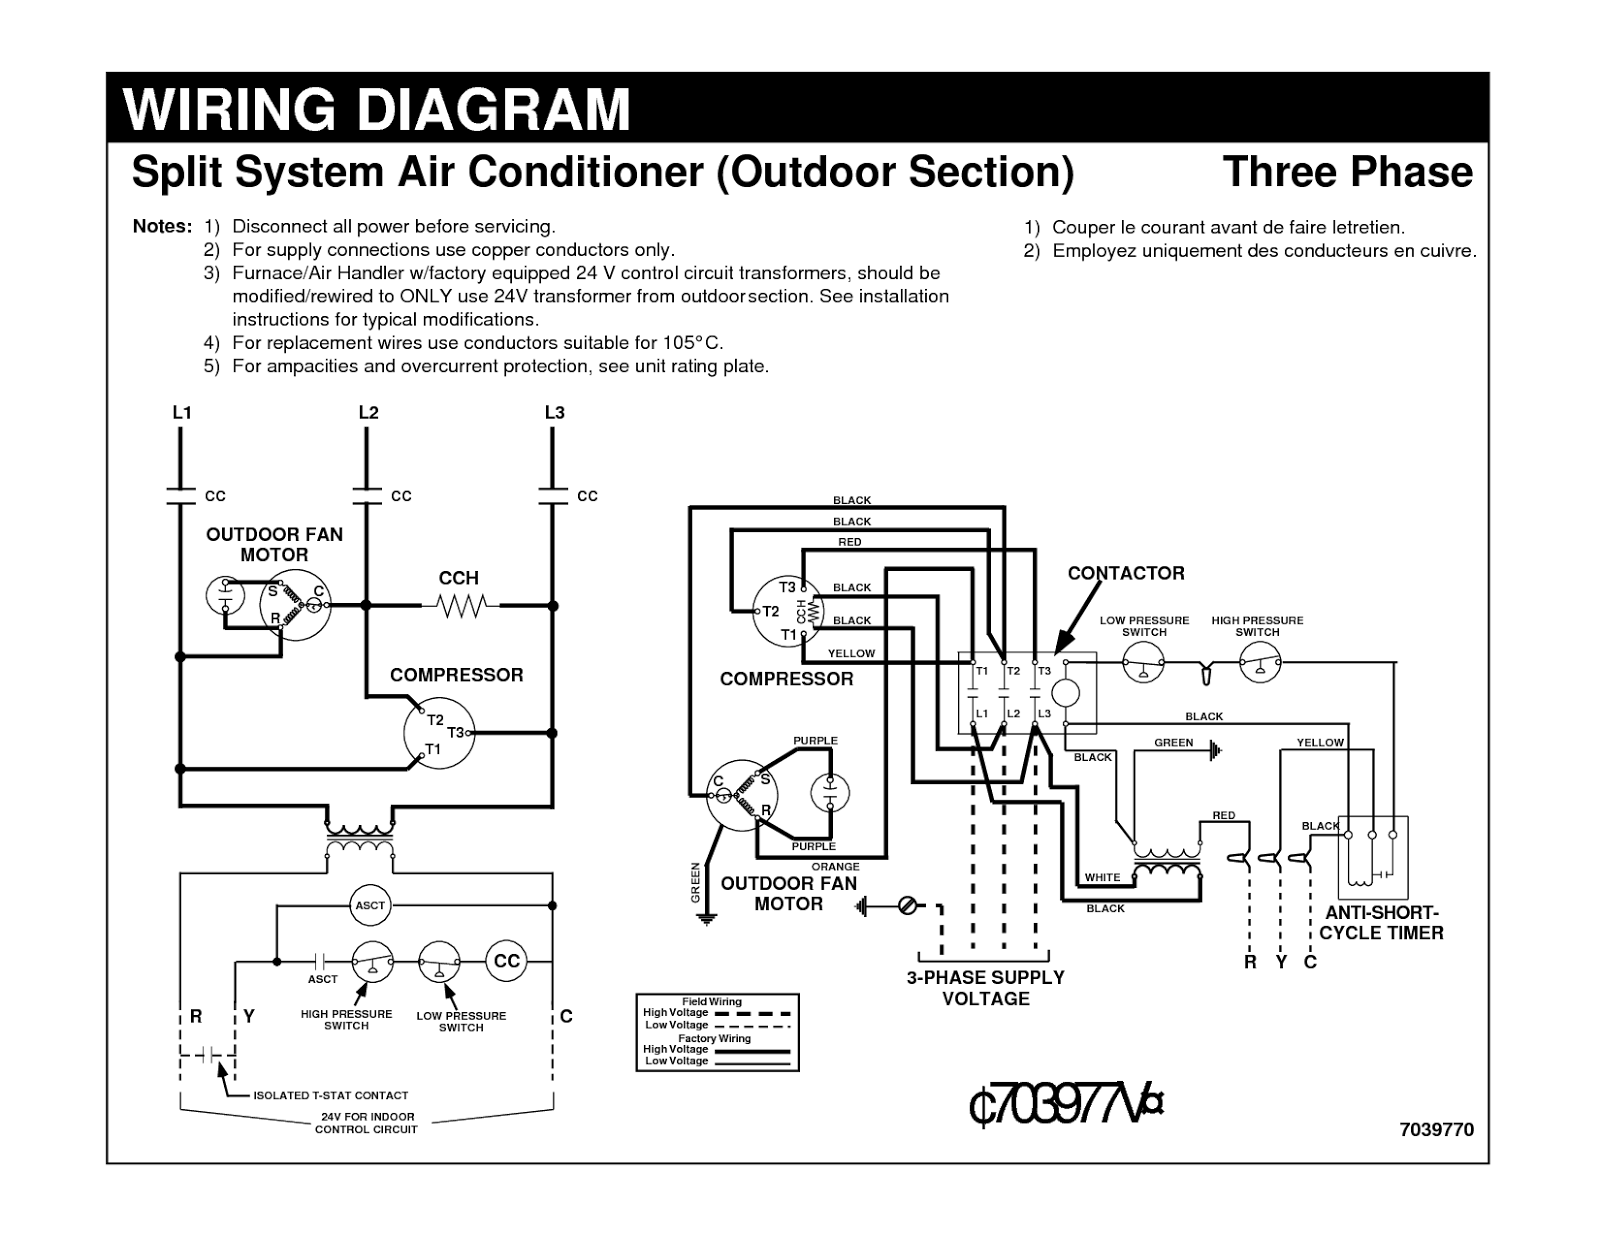 coleman air conditioning wiring diagram with How To Read Electrical Wiring Diagrams on Trailer Wiring Diagrams together with Coleman 13500 Btu Roof Air Conditioner Top Unit P 1331 additionally Gas Furnace Schematic Wiring Diagram likewise How To Read Electrical Wiring Diagrams furthermore Goodman Board B18099 23.